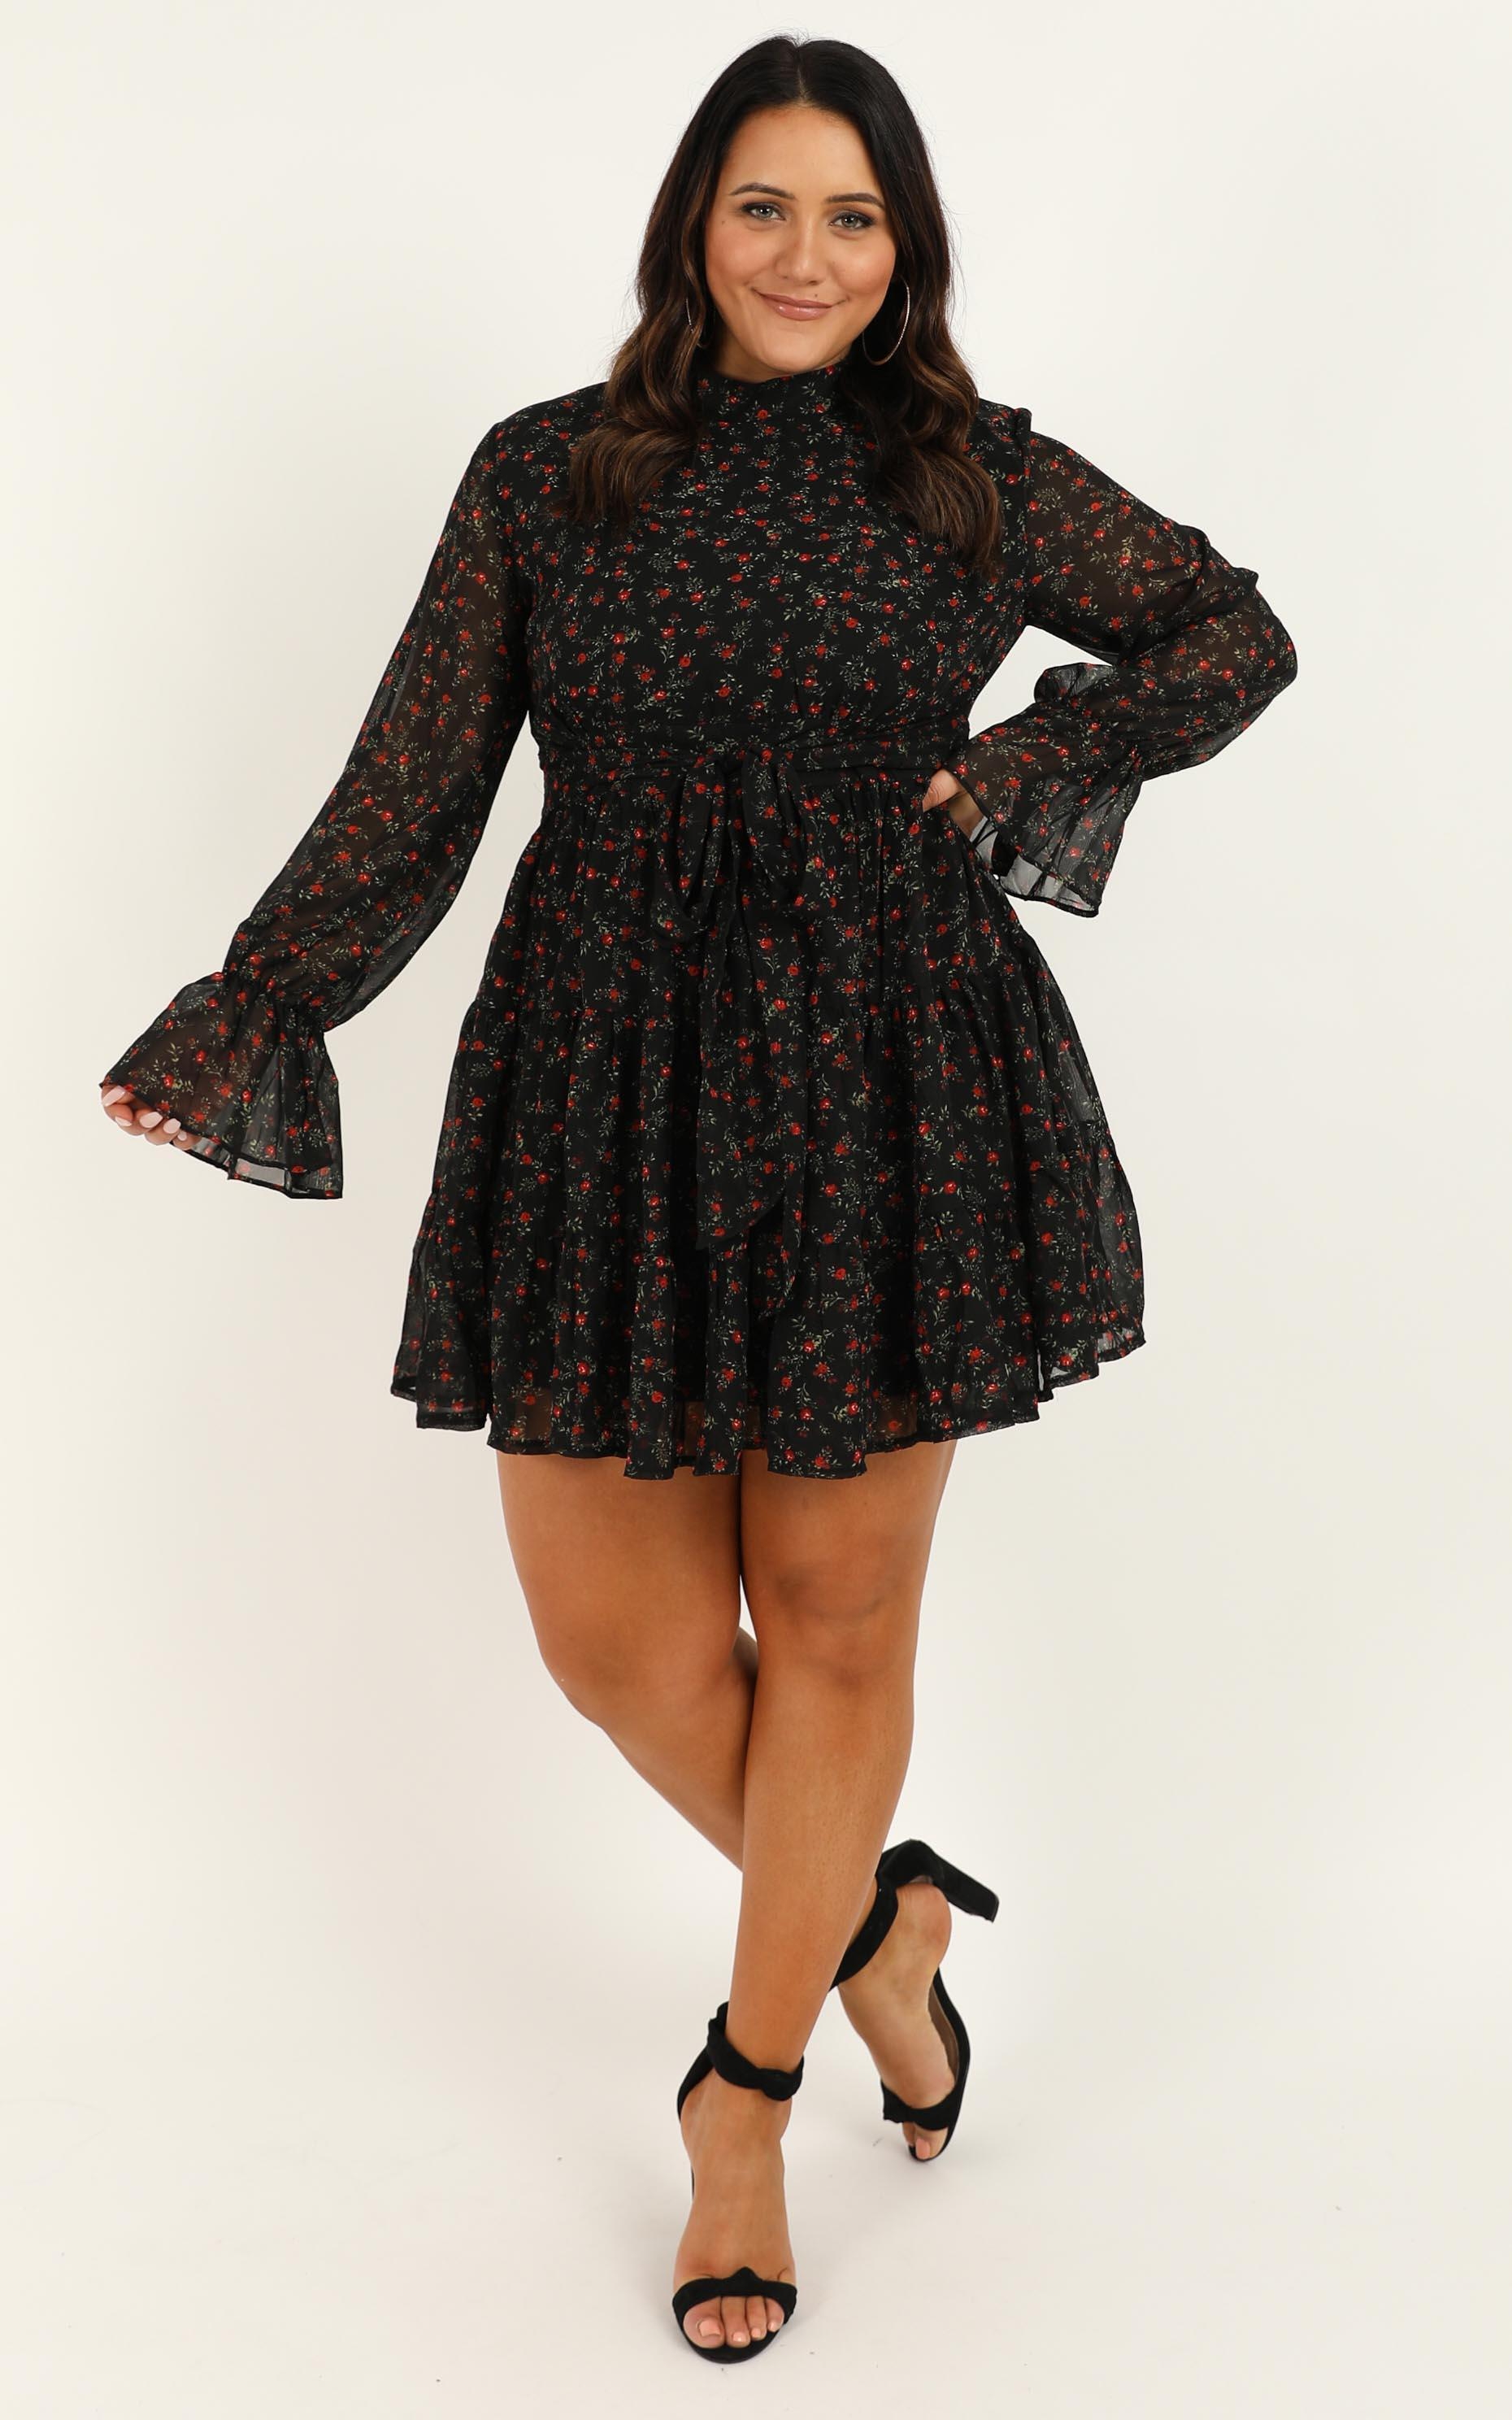 Prove Them Wrong Dress in black floral - 20 (XXXXL), Black, hi-res image number null